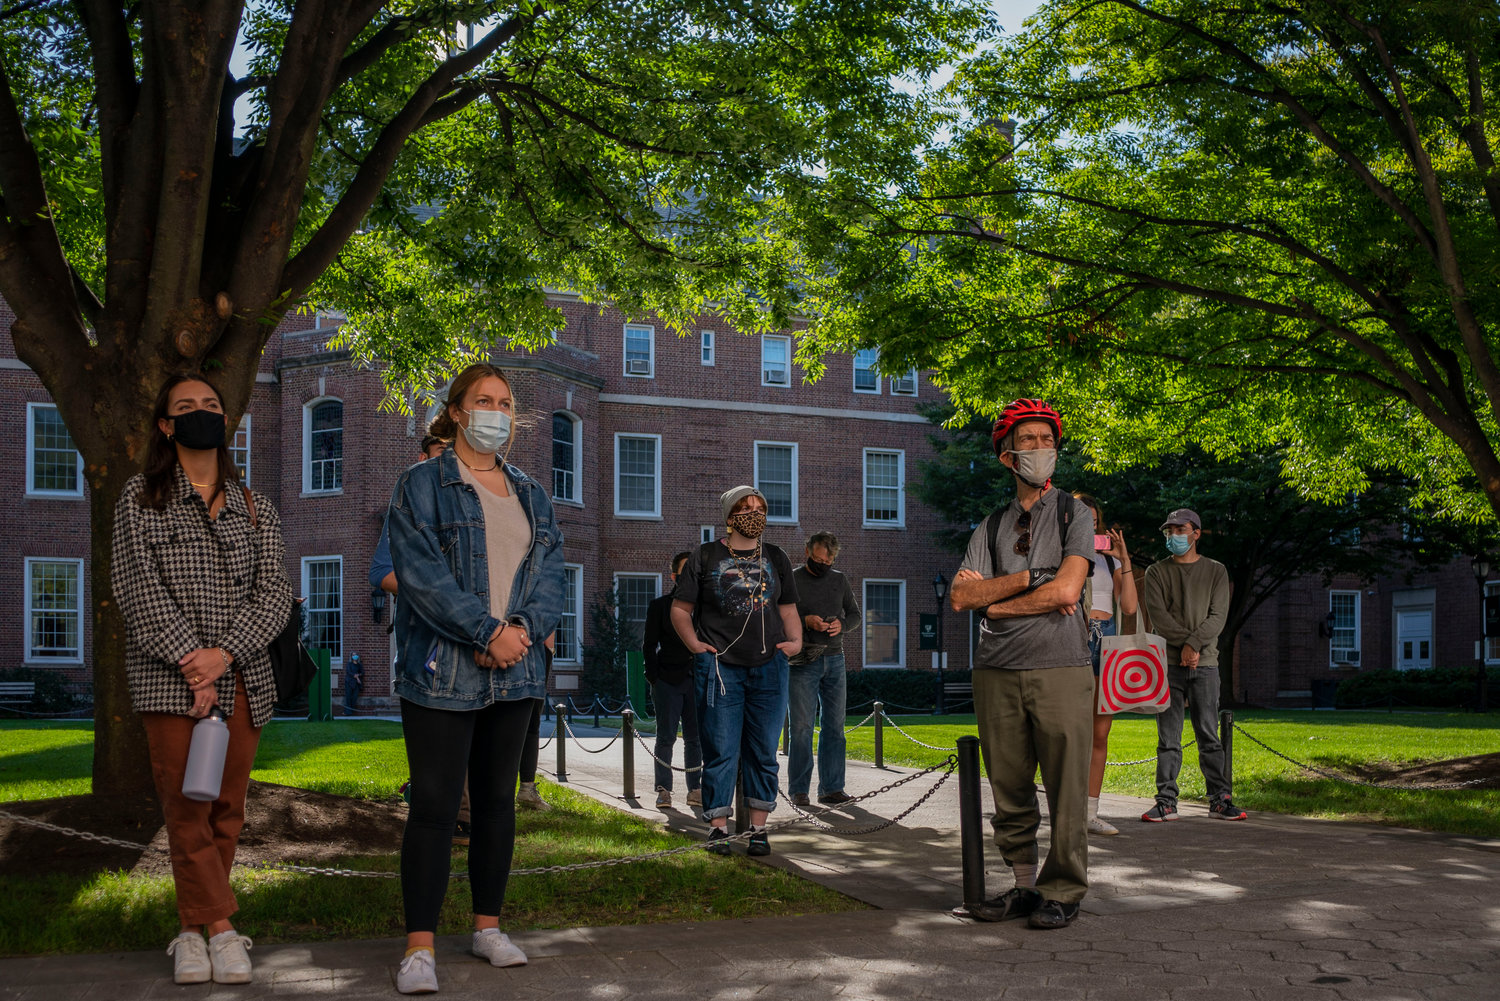 Although they also had the option to attend remotely, a small but steady crowd gathered at Manhattan College's Smith Auditorium for a 'shoe strike,' a protest calling for action on climate change.